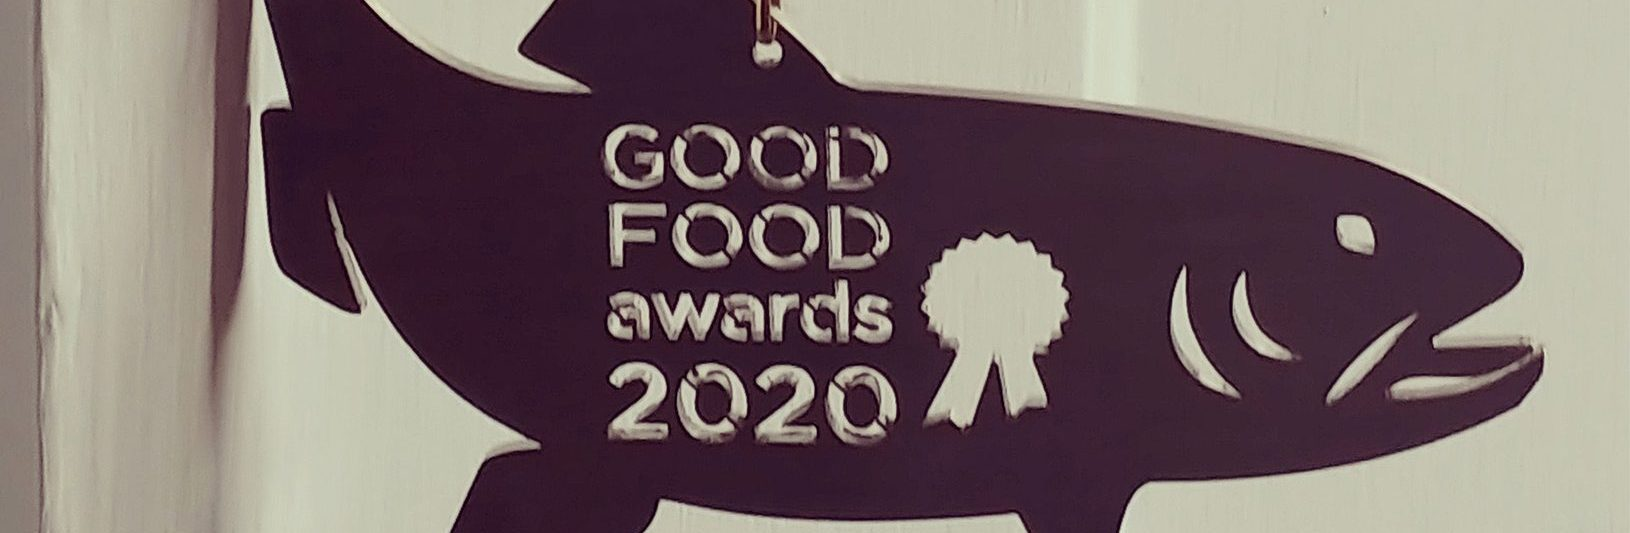 Good Food Award